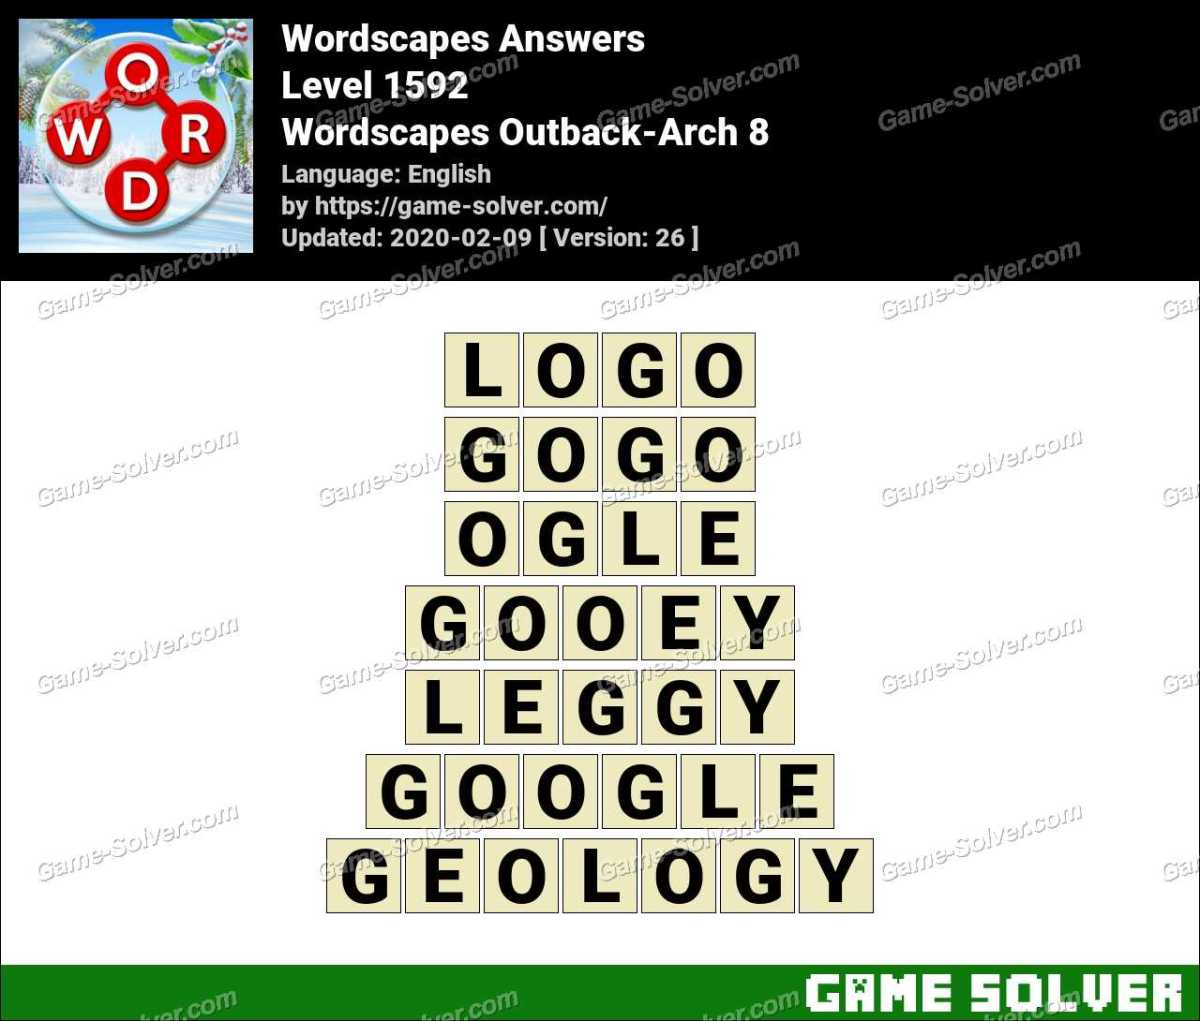 Wordscapes Outback-Arch 8 Answers